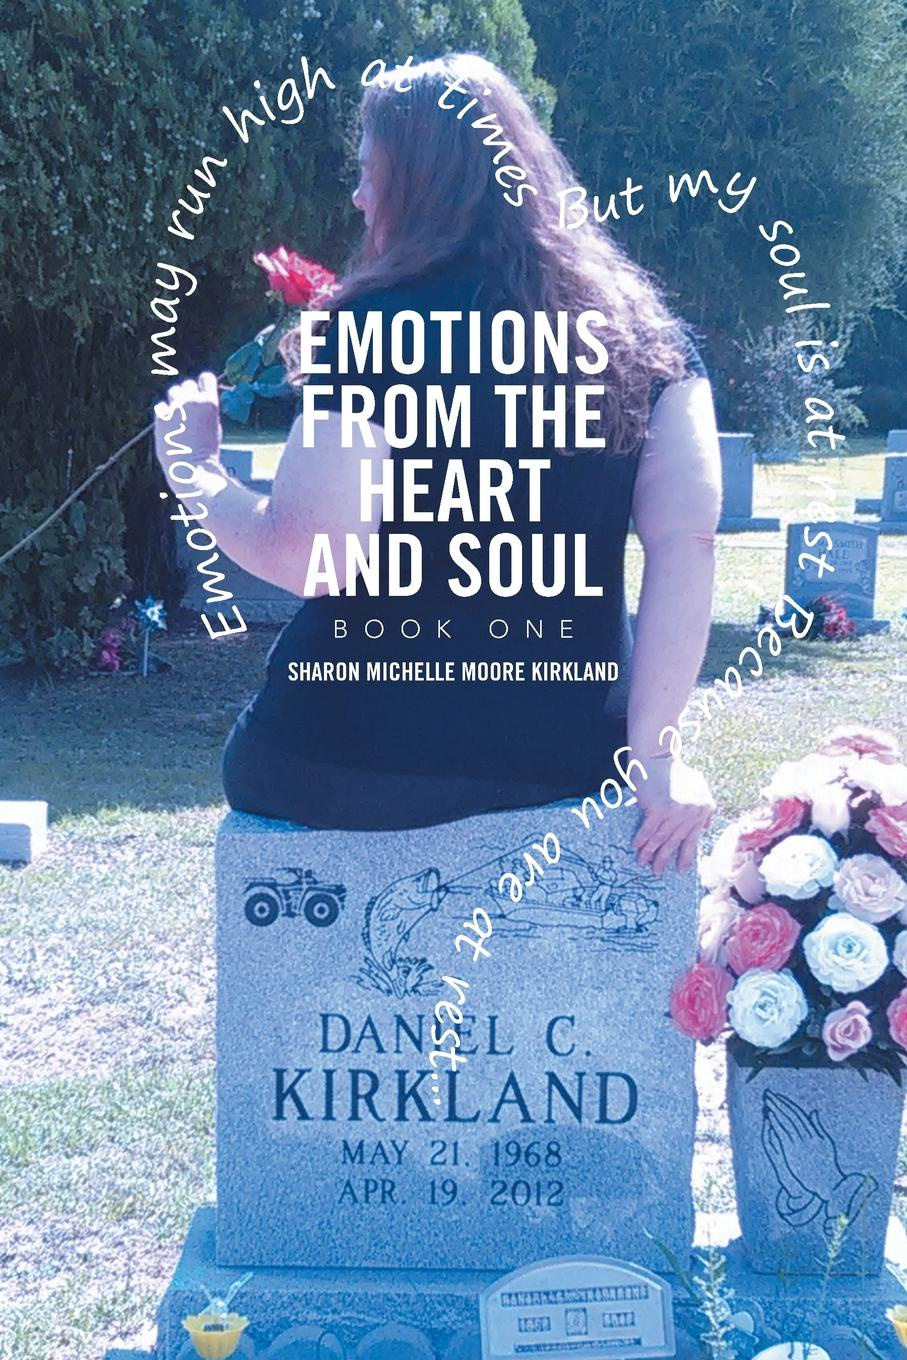 Sharon Michelle Moore Kirkland Emotions From the Heart and Soul. Book One kevin lindsey memoirs of the heart visions from the soul